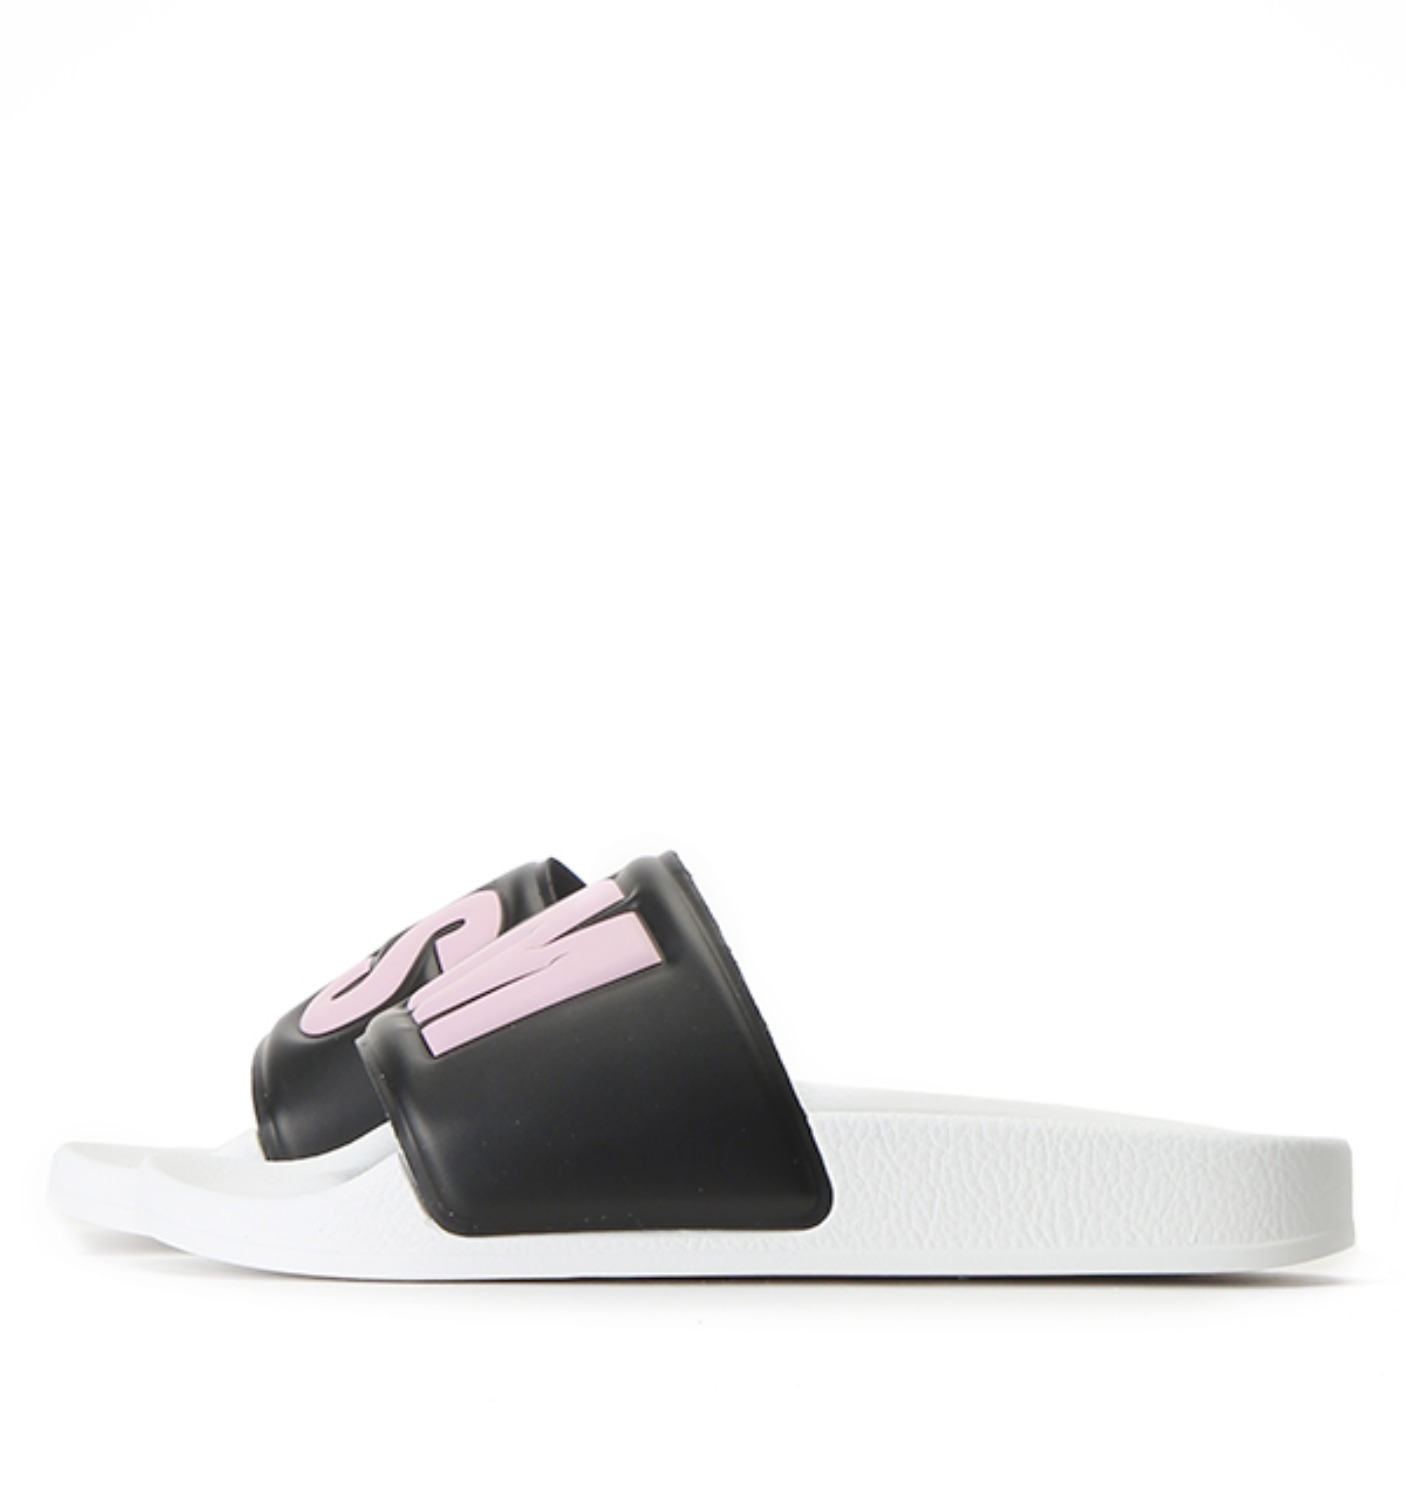 CIABATTA DONNA POOL SLIDE BLACK/PINK/OPT WHITE(2341MDS100)